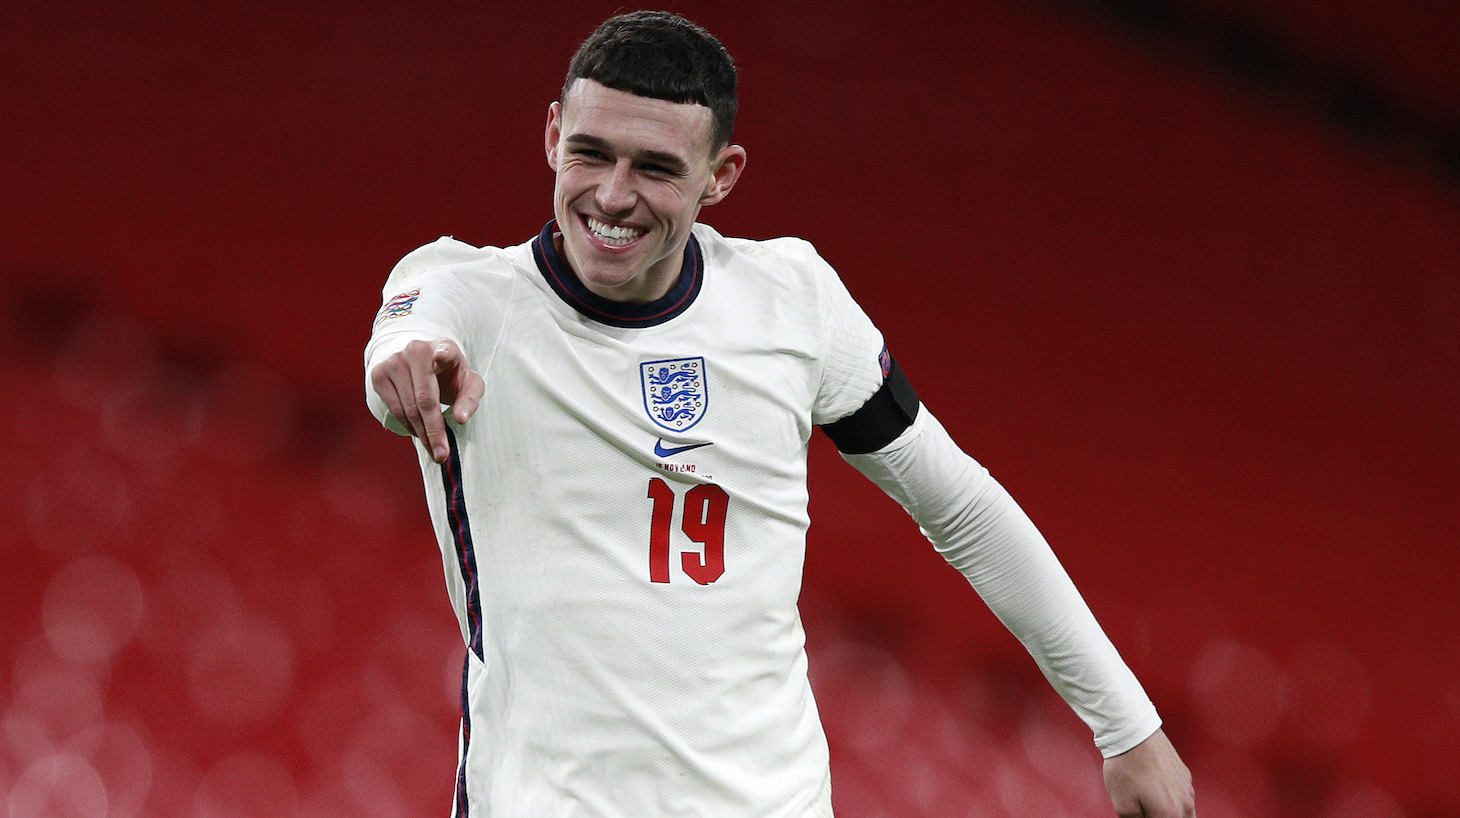 Phil Foden of England celebrates after scoring their team's third goal during the UEFA Nations League group stage match between England and Iceland at Wembley Stadium on November 18, 2020 in London, England. Football Stadiums around Europe remain empty due to the Coronavirus Pandemic as Government social distancing laws prohibit fans inside venues resulting in fixtures being played behind closed doors.